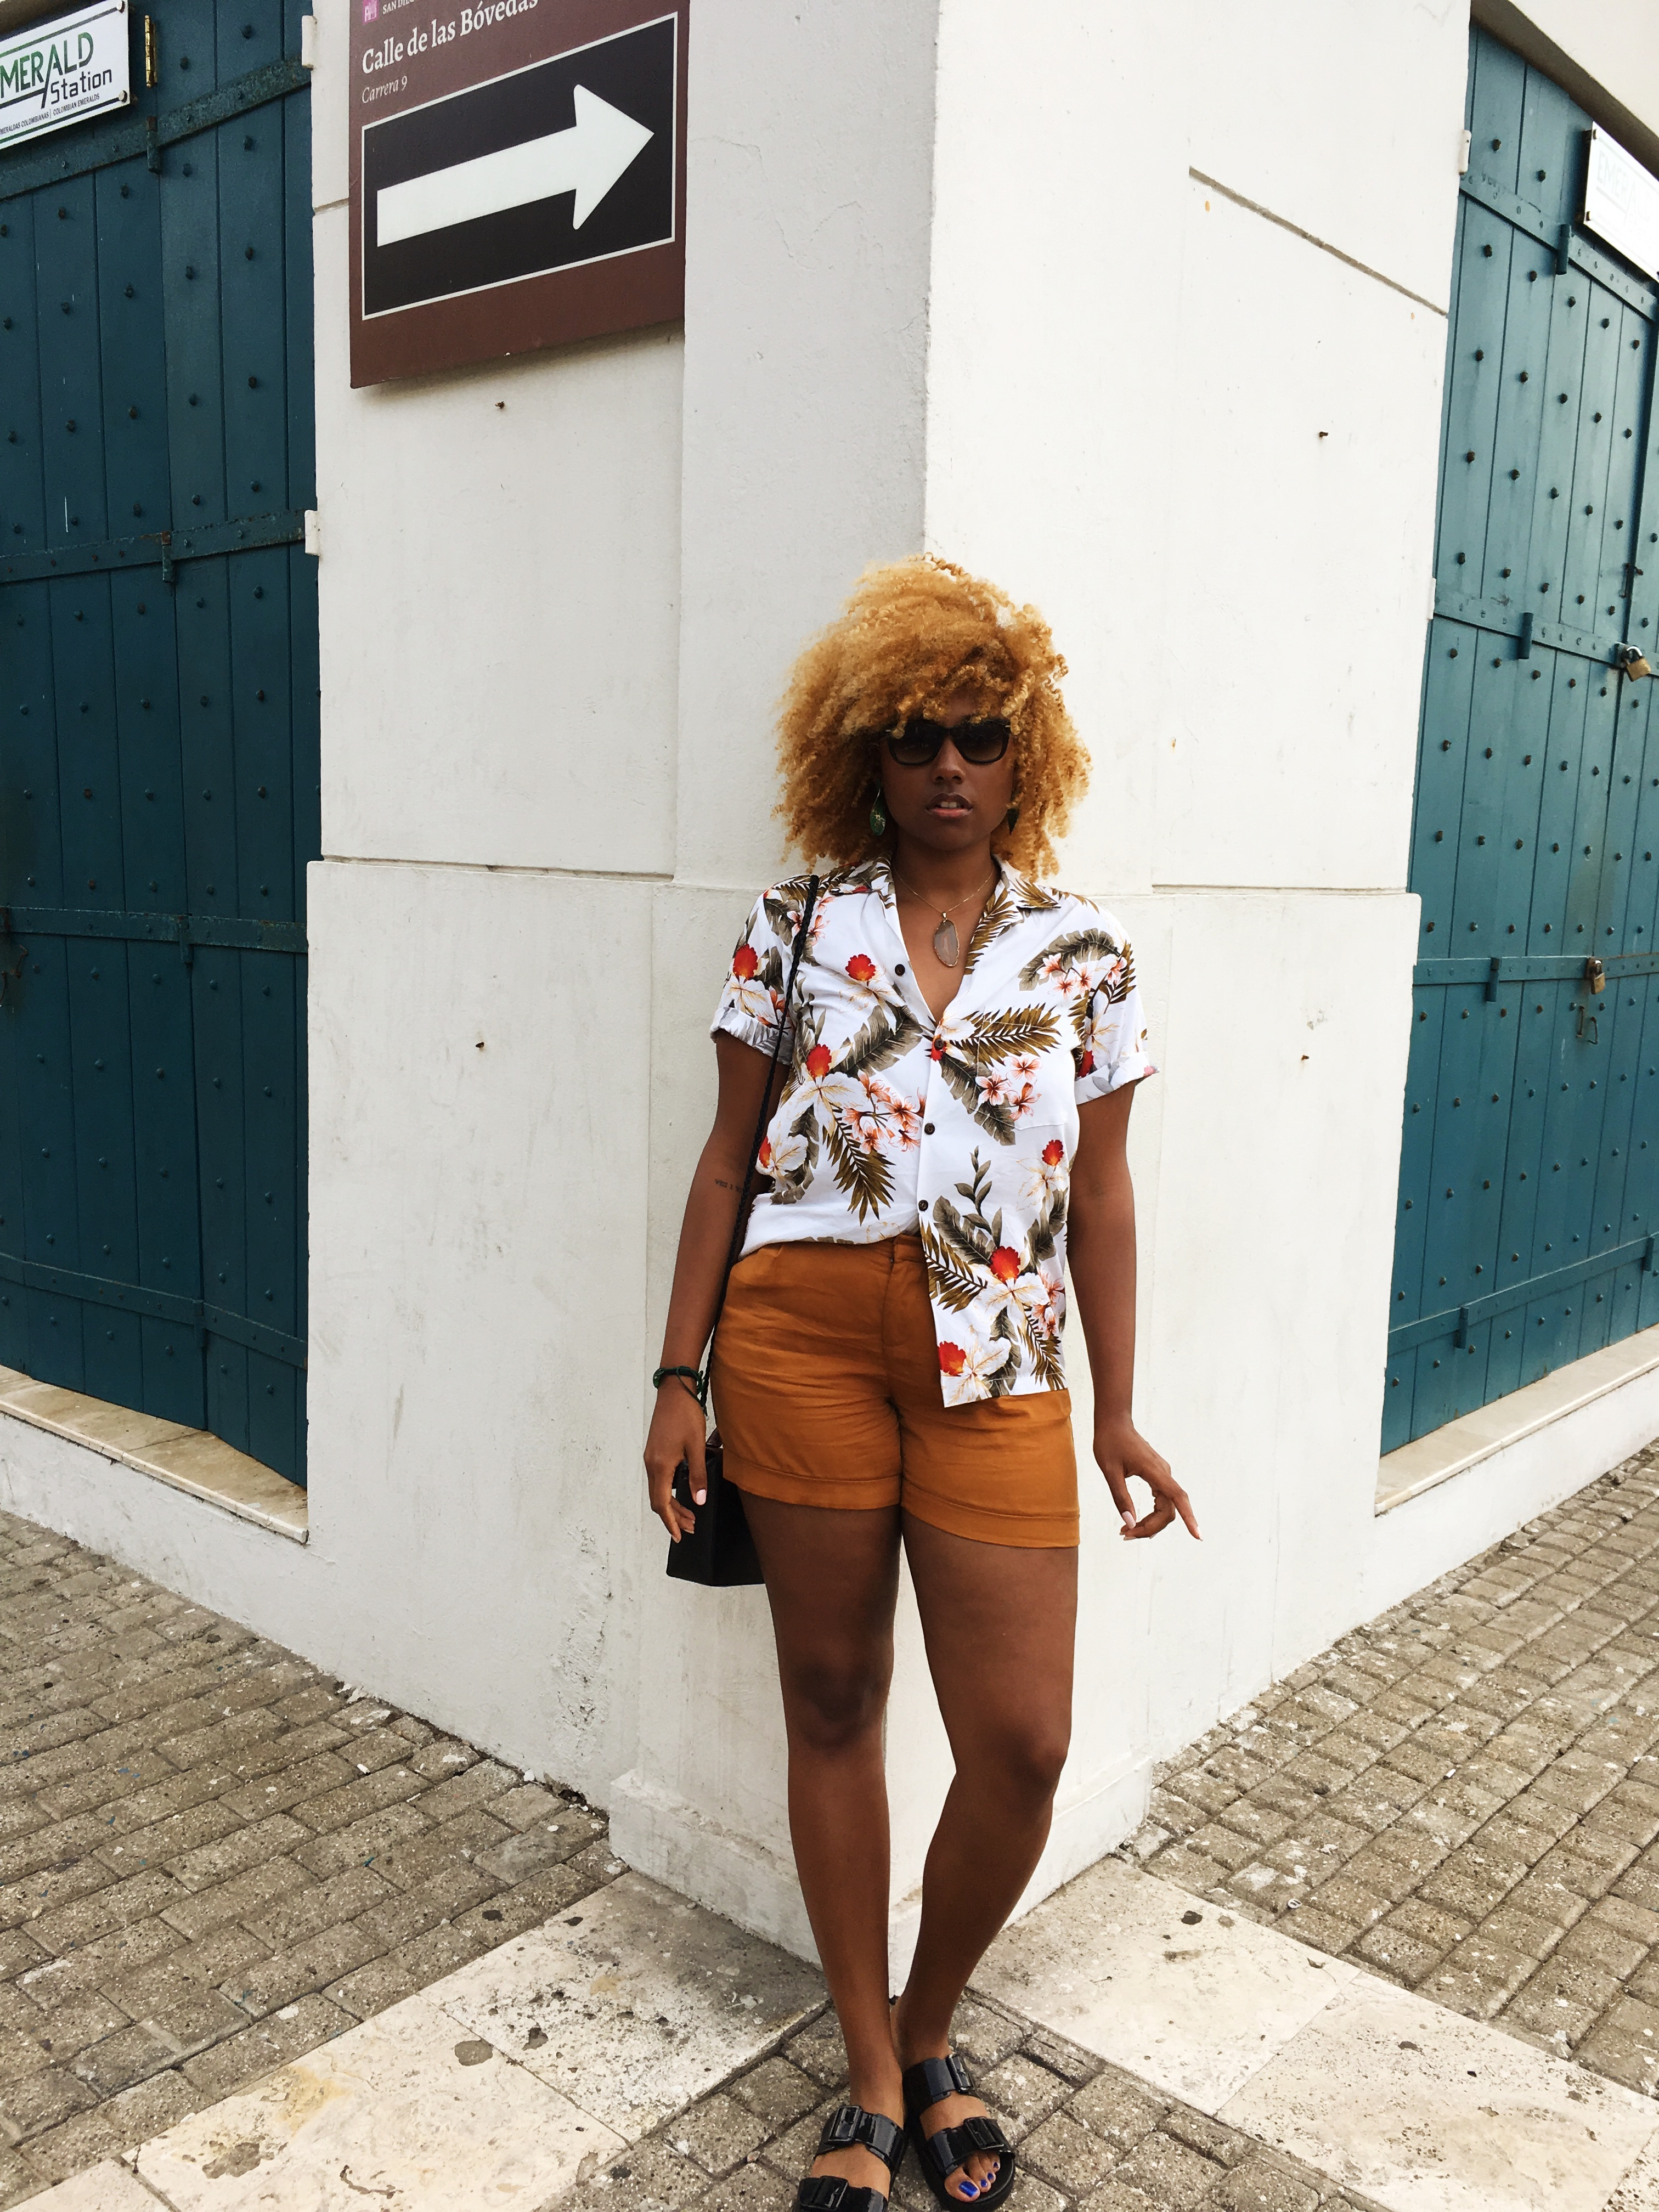 lcm-liveclothesminded-walled city-cartagena-colombia